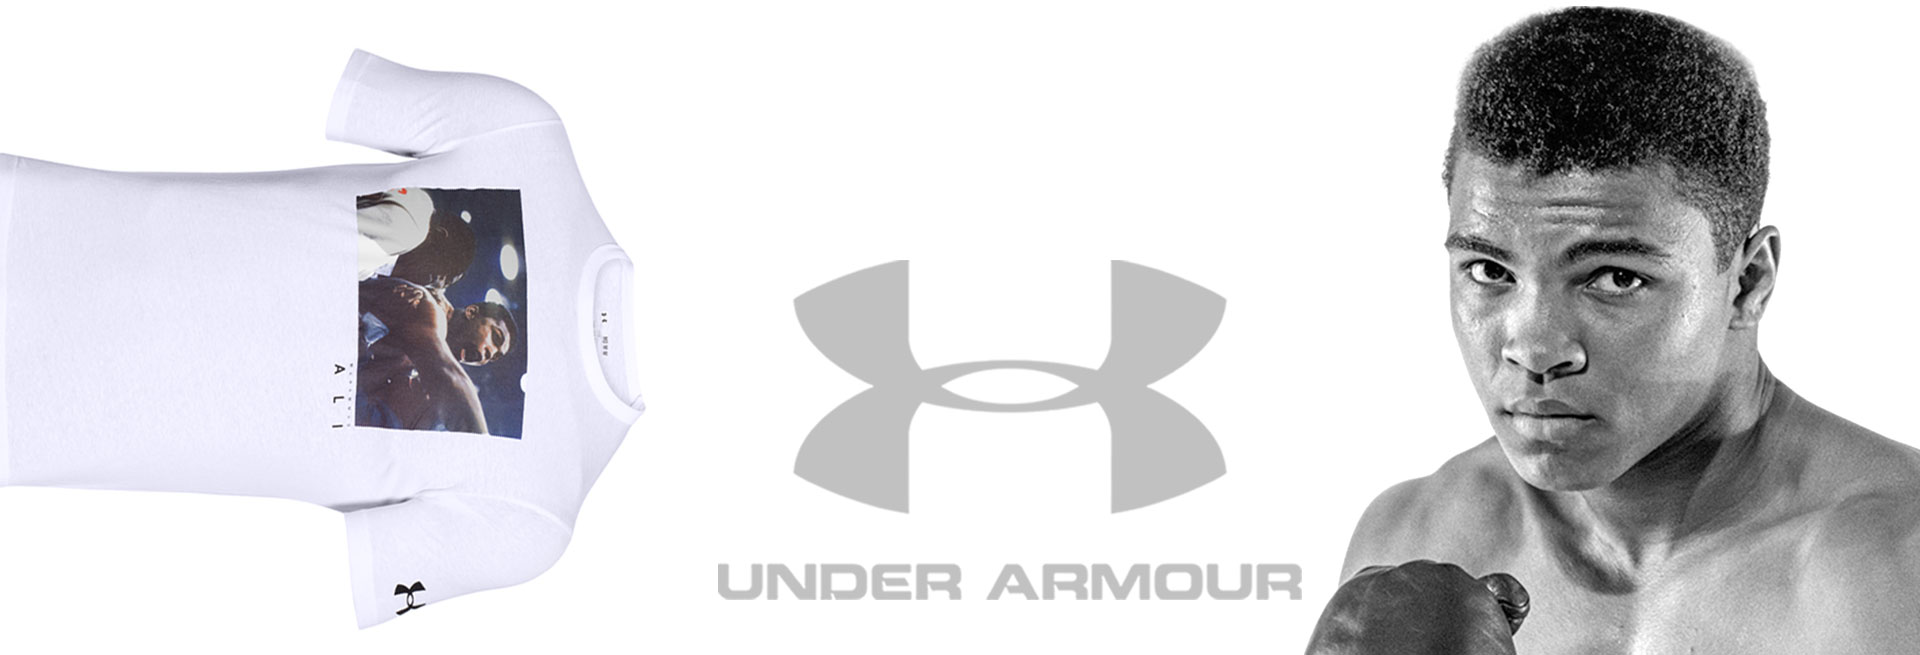 under armour 4 - آندر آرمور Under Armor